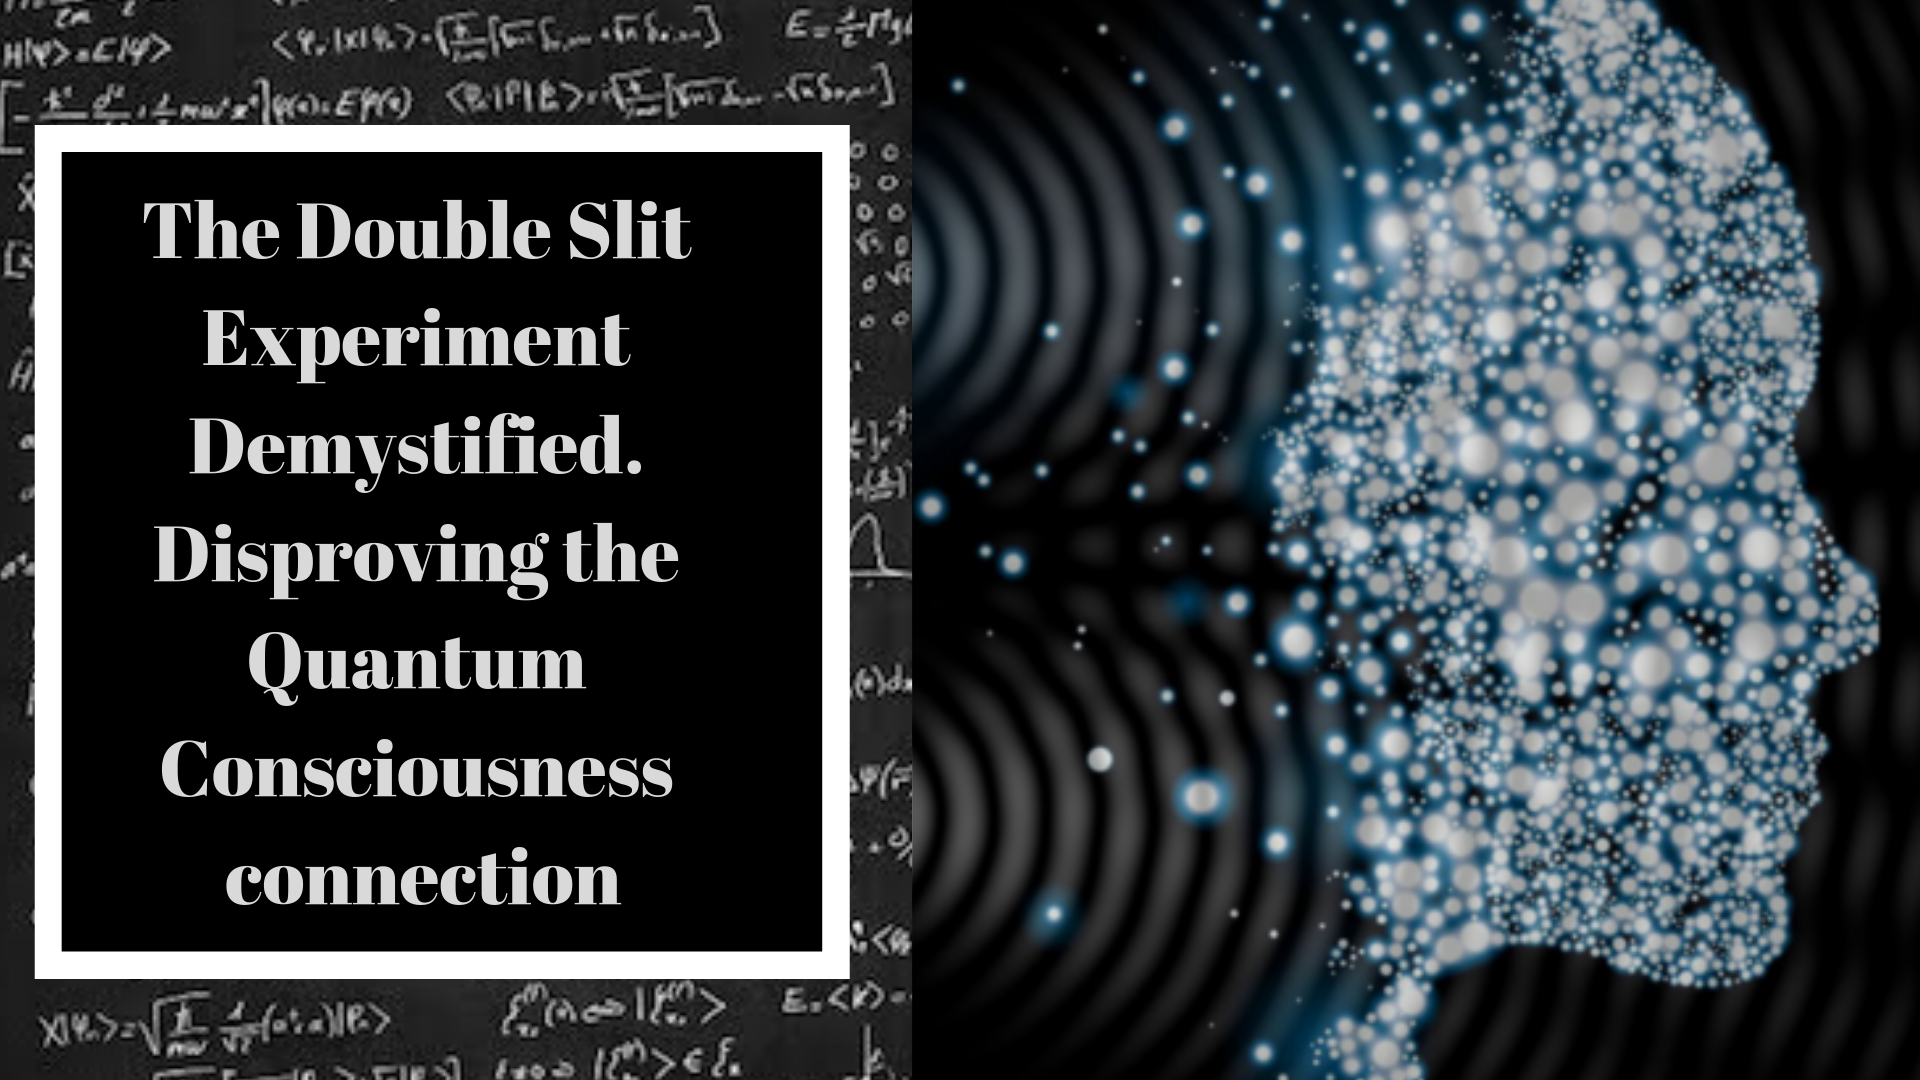 The Double Slit Experiment Demystified  Disproving the